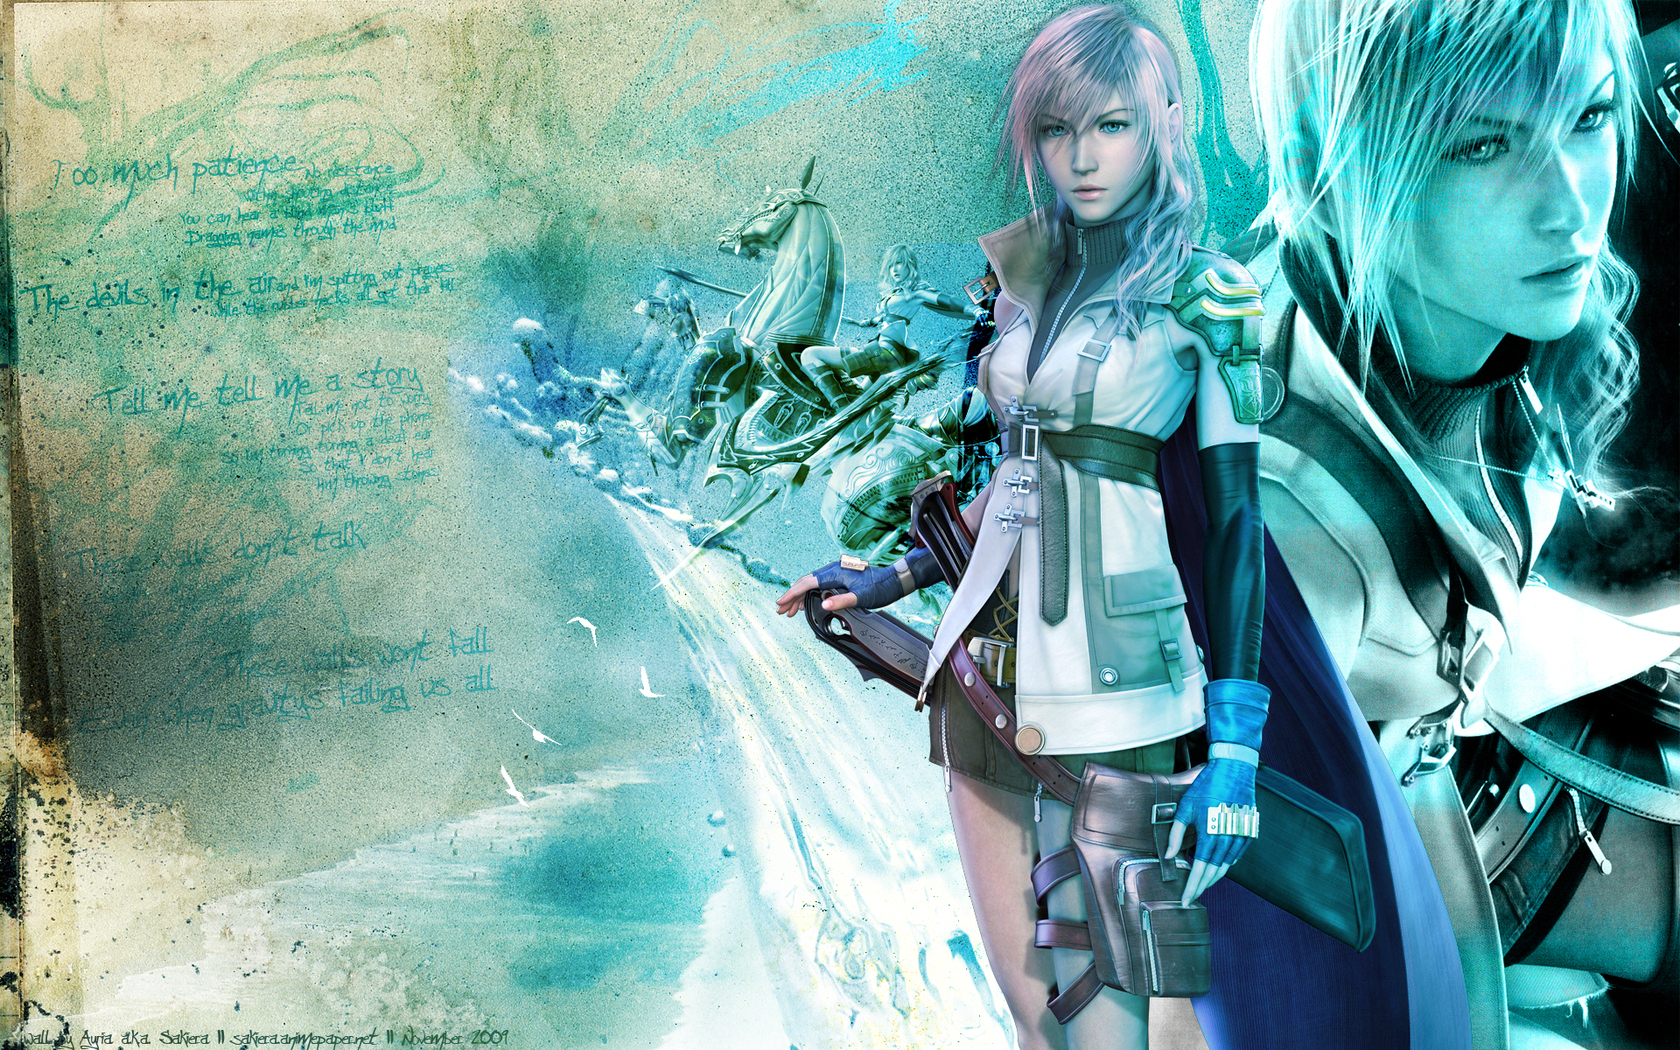 Final fantasy xiii wallpaper and background image 1680x1050 id video game final fantasy xiii final fantasy claire farron lightning final fantasy wallpaper voltagebd Images